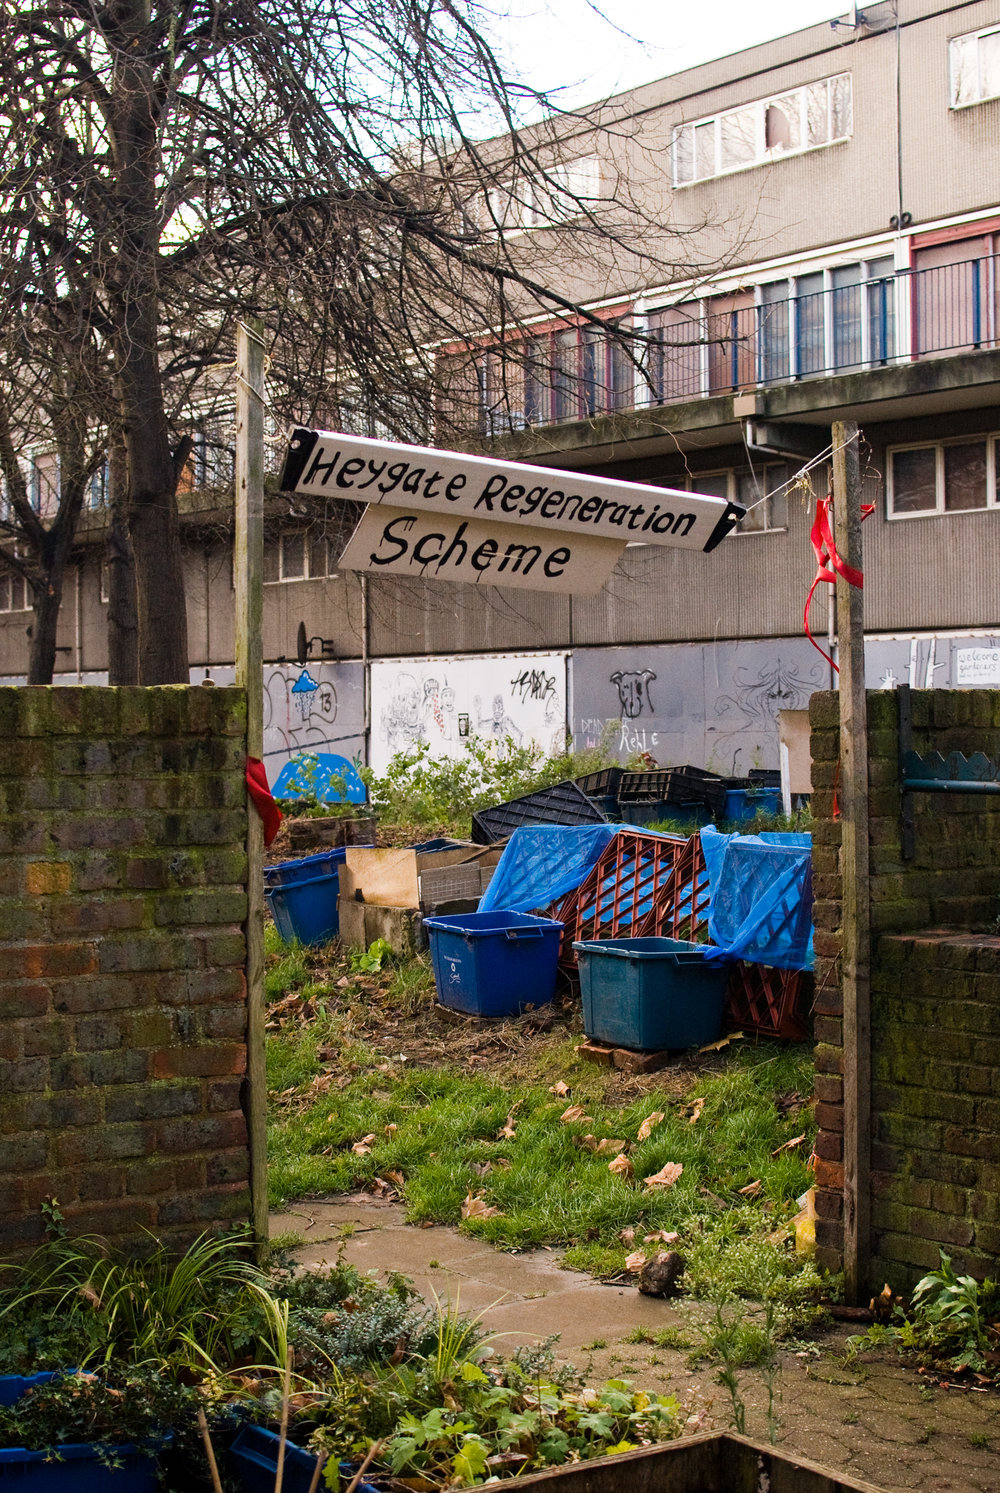 Georgina_cook_Heygate_estate_regeneration_scheme.jpg